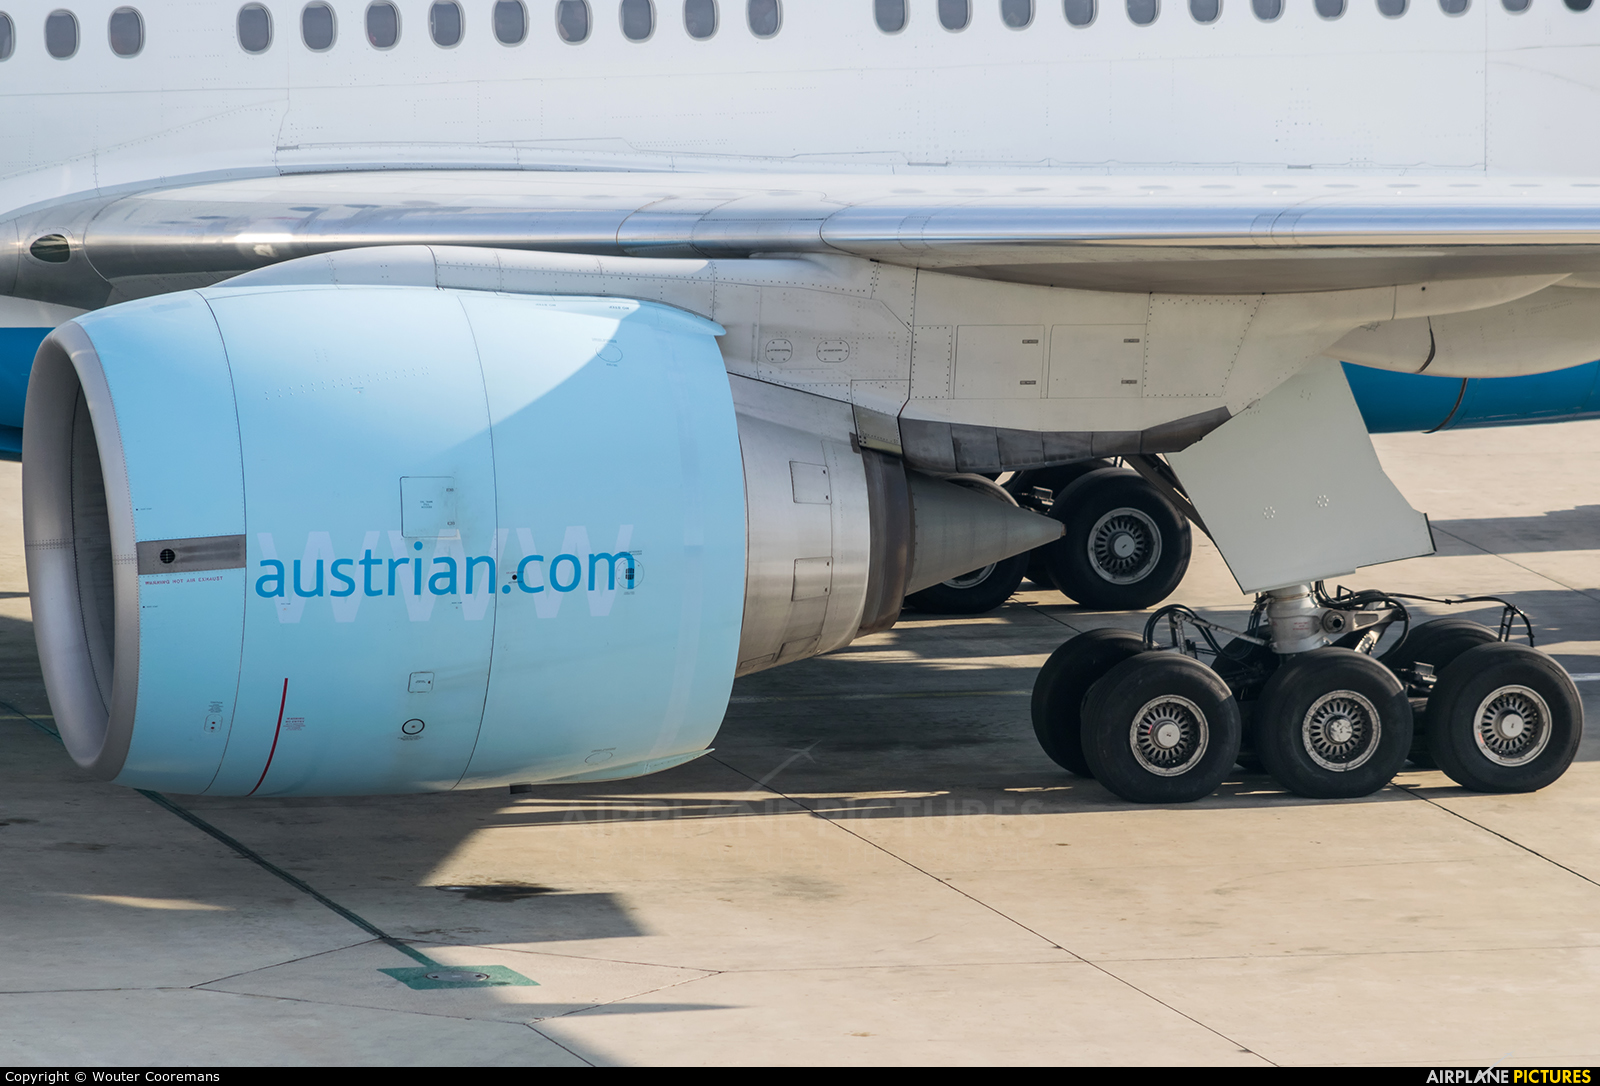 Austrian Airlines/Arrows/Tyrolean OE-LPD aircraft at Vienna - Schwechat